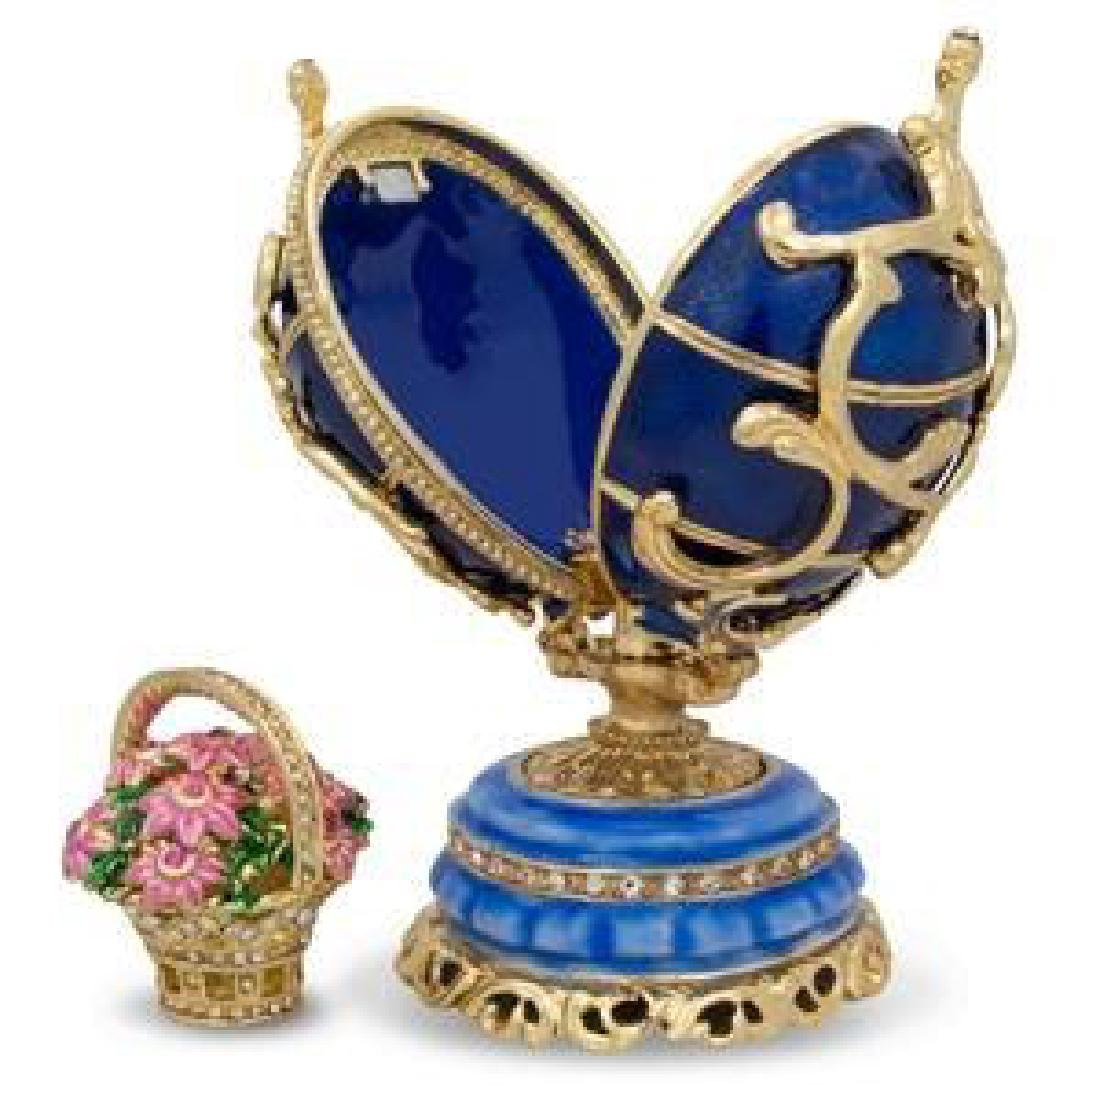 1899-1903 Spring Flowers in Blue Russian Faberge Egg